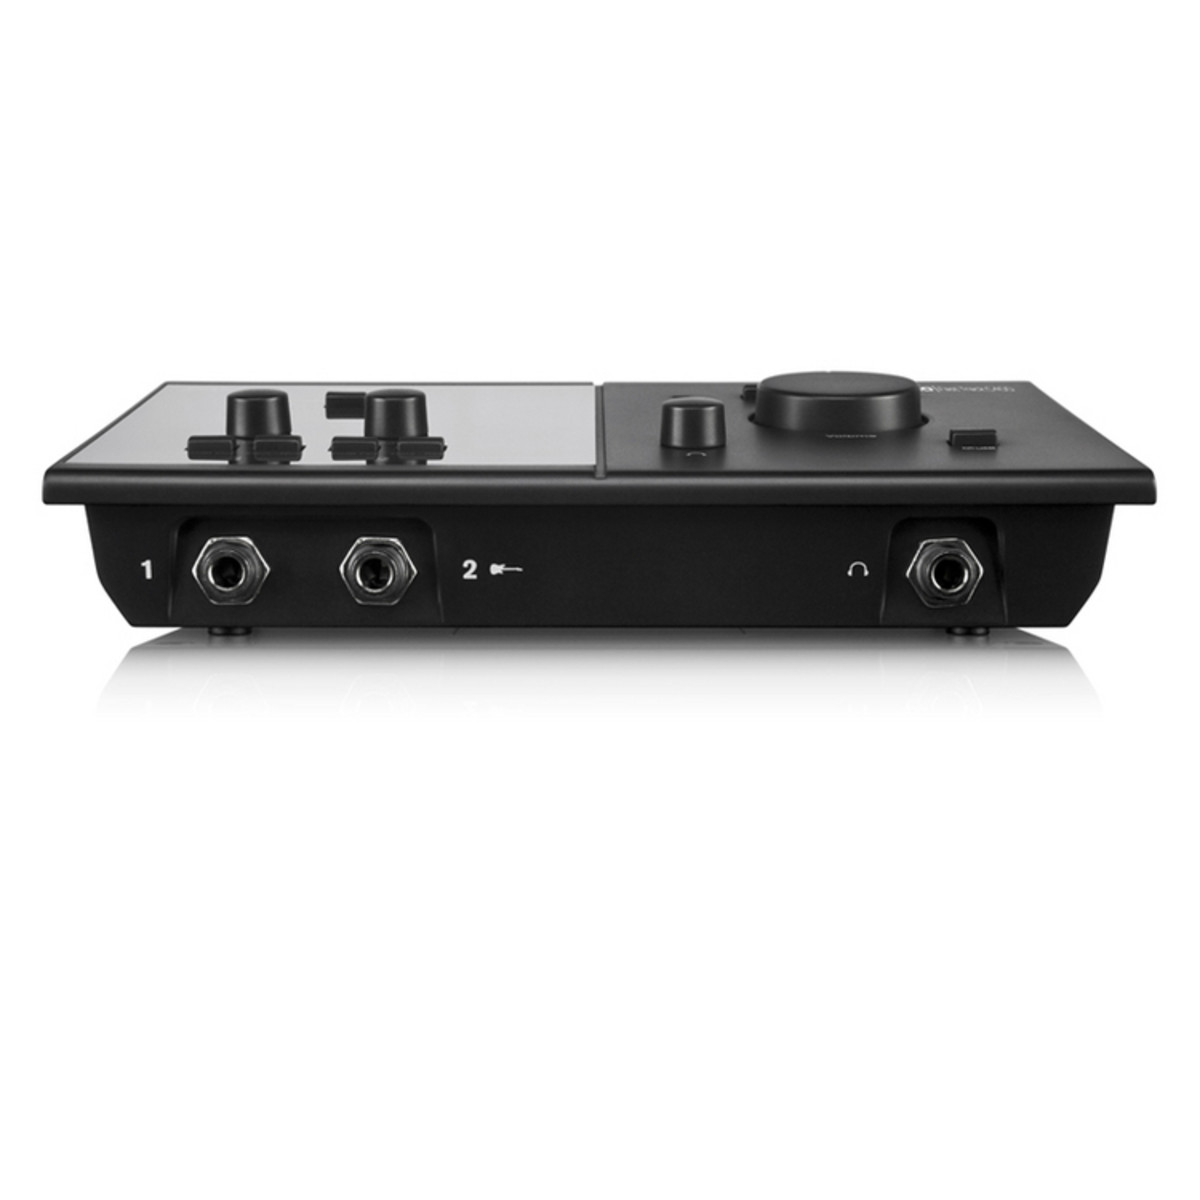 disc m audio fast track c400 usb audio interface controller at. Black Bedroom Furniture Sets. Home Design Ideas